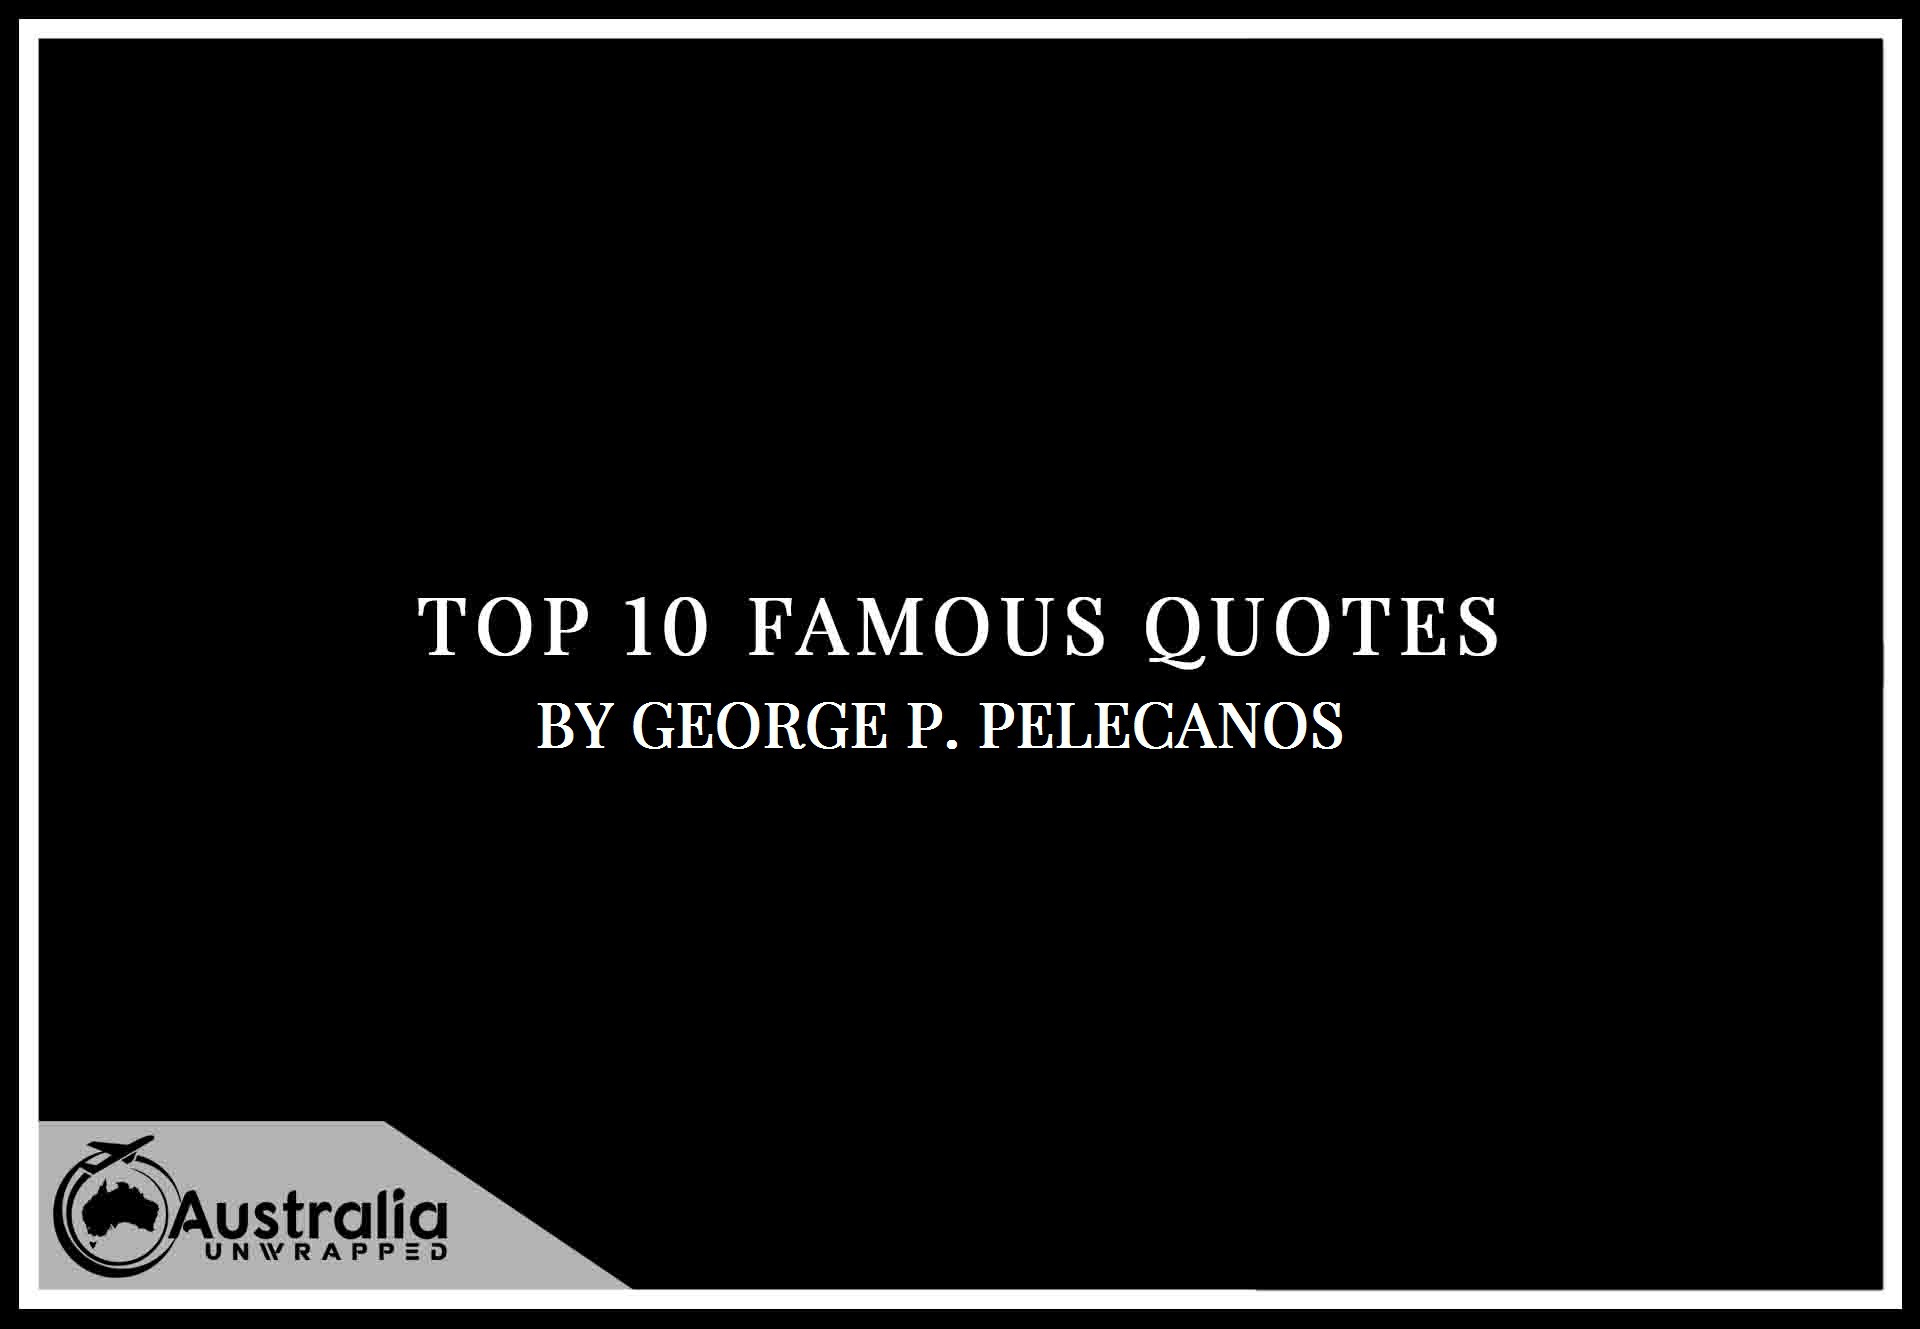 George Pelecanos's Top 10 Popular and Famous Quotes